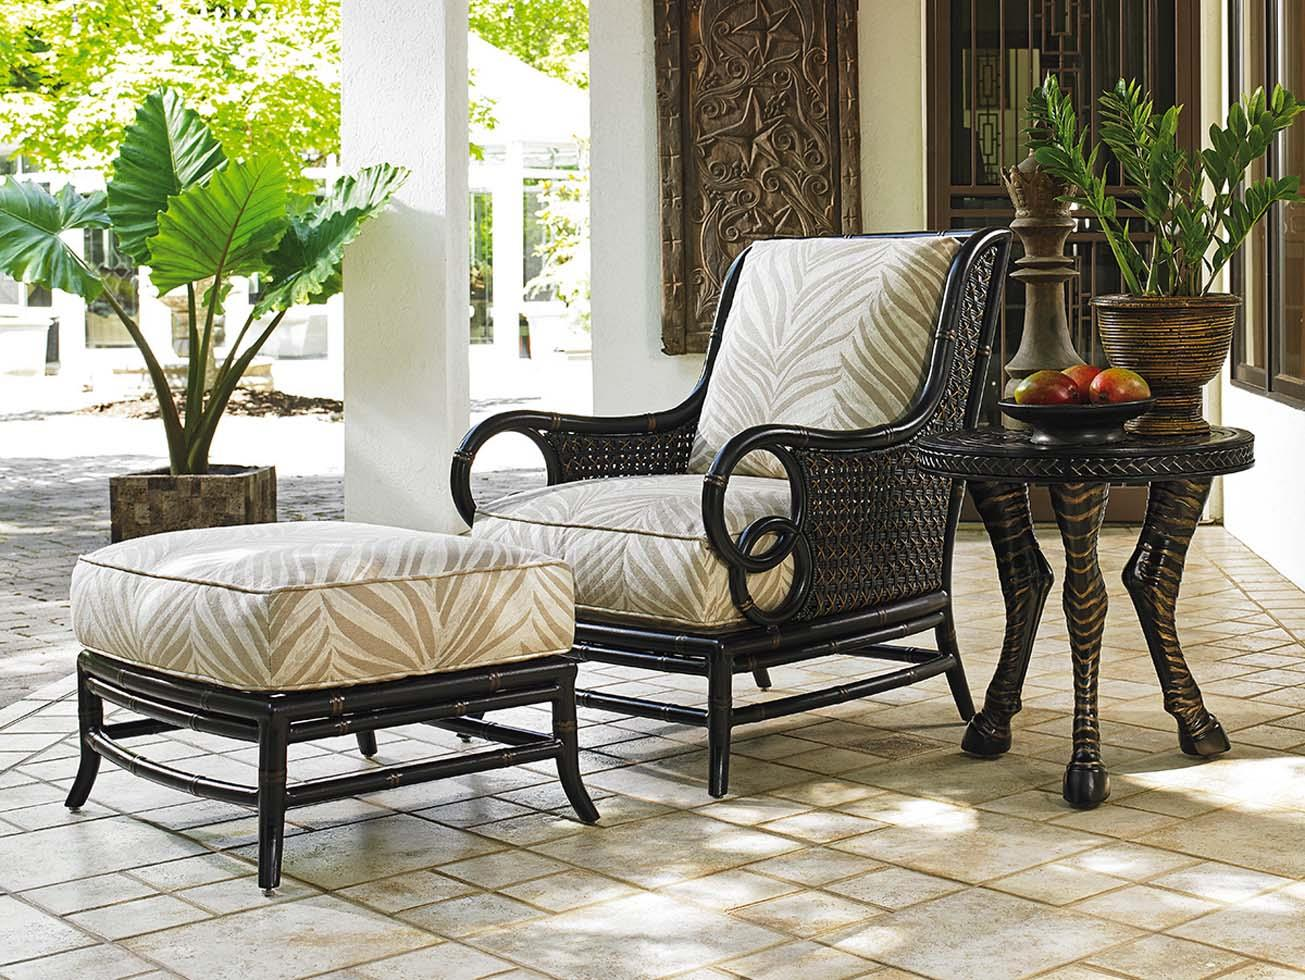 Tommy Bahama Outdoor Living Marimba Outdoor Lounge Chair Jacksonville Furni